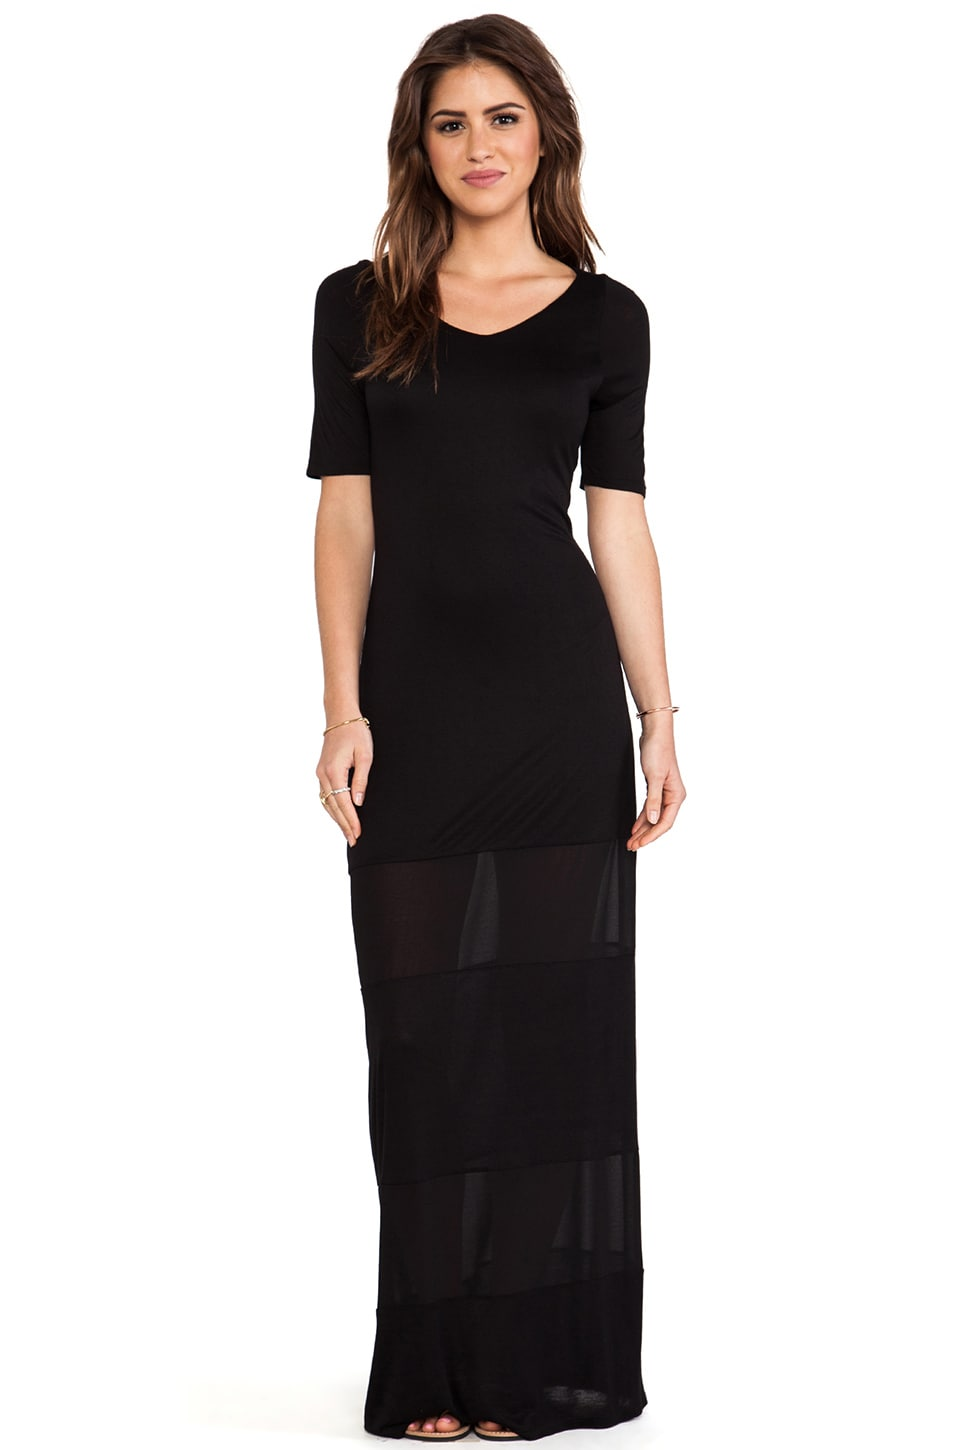 Enza Costa Chiffon Panel Maxi Dress in Black